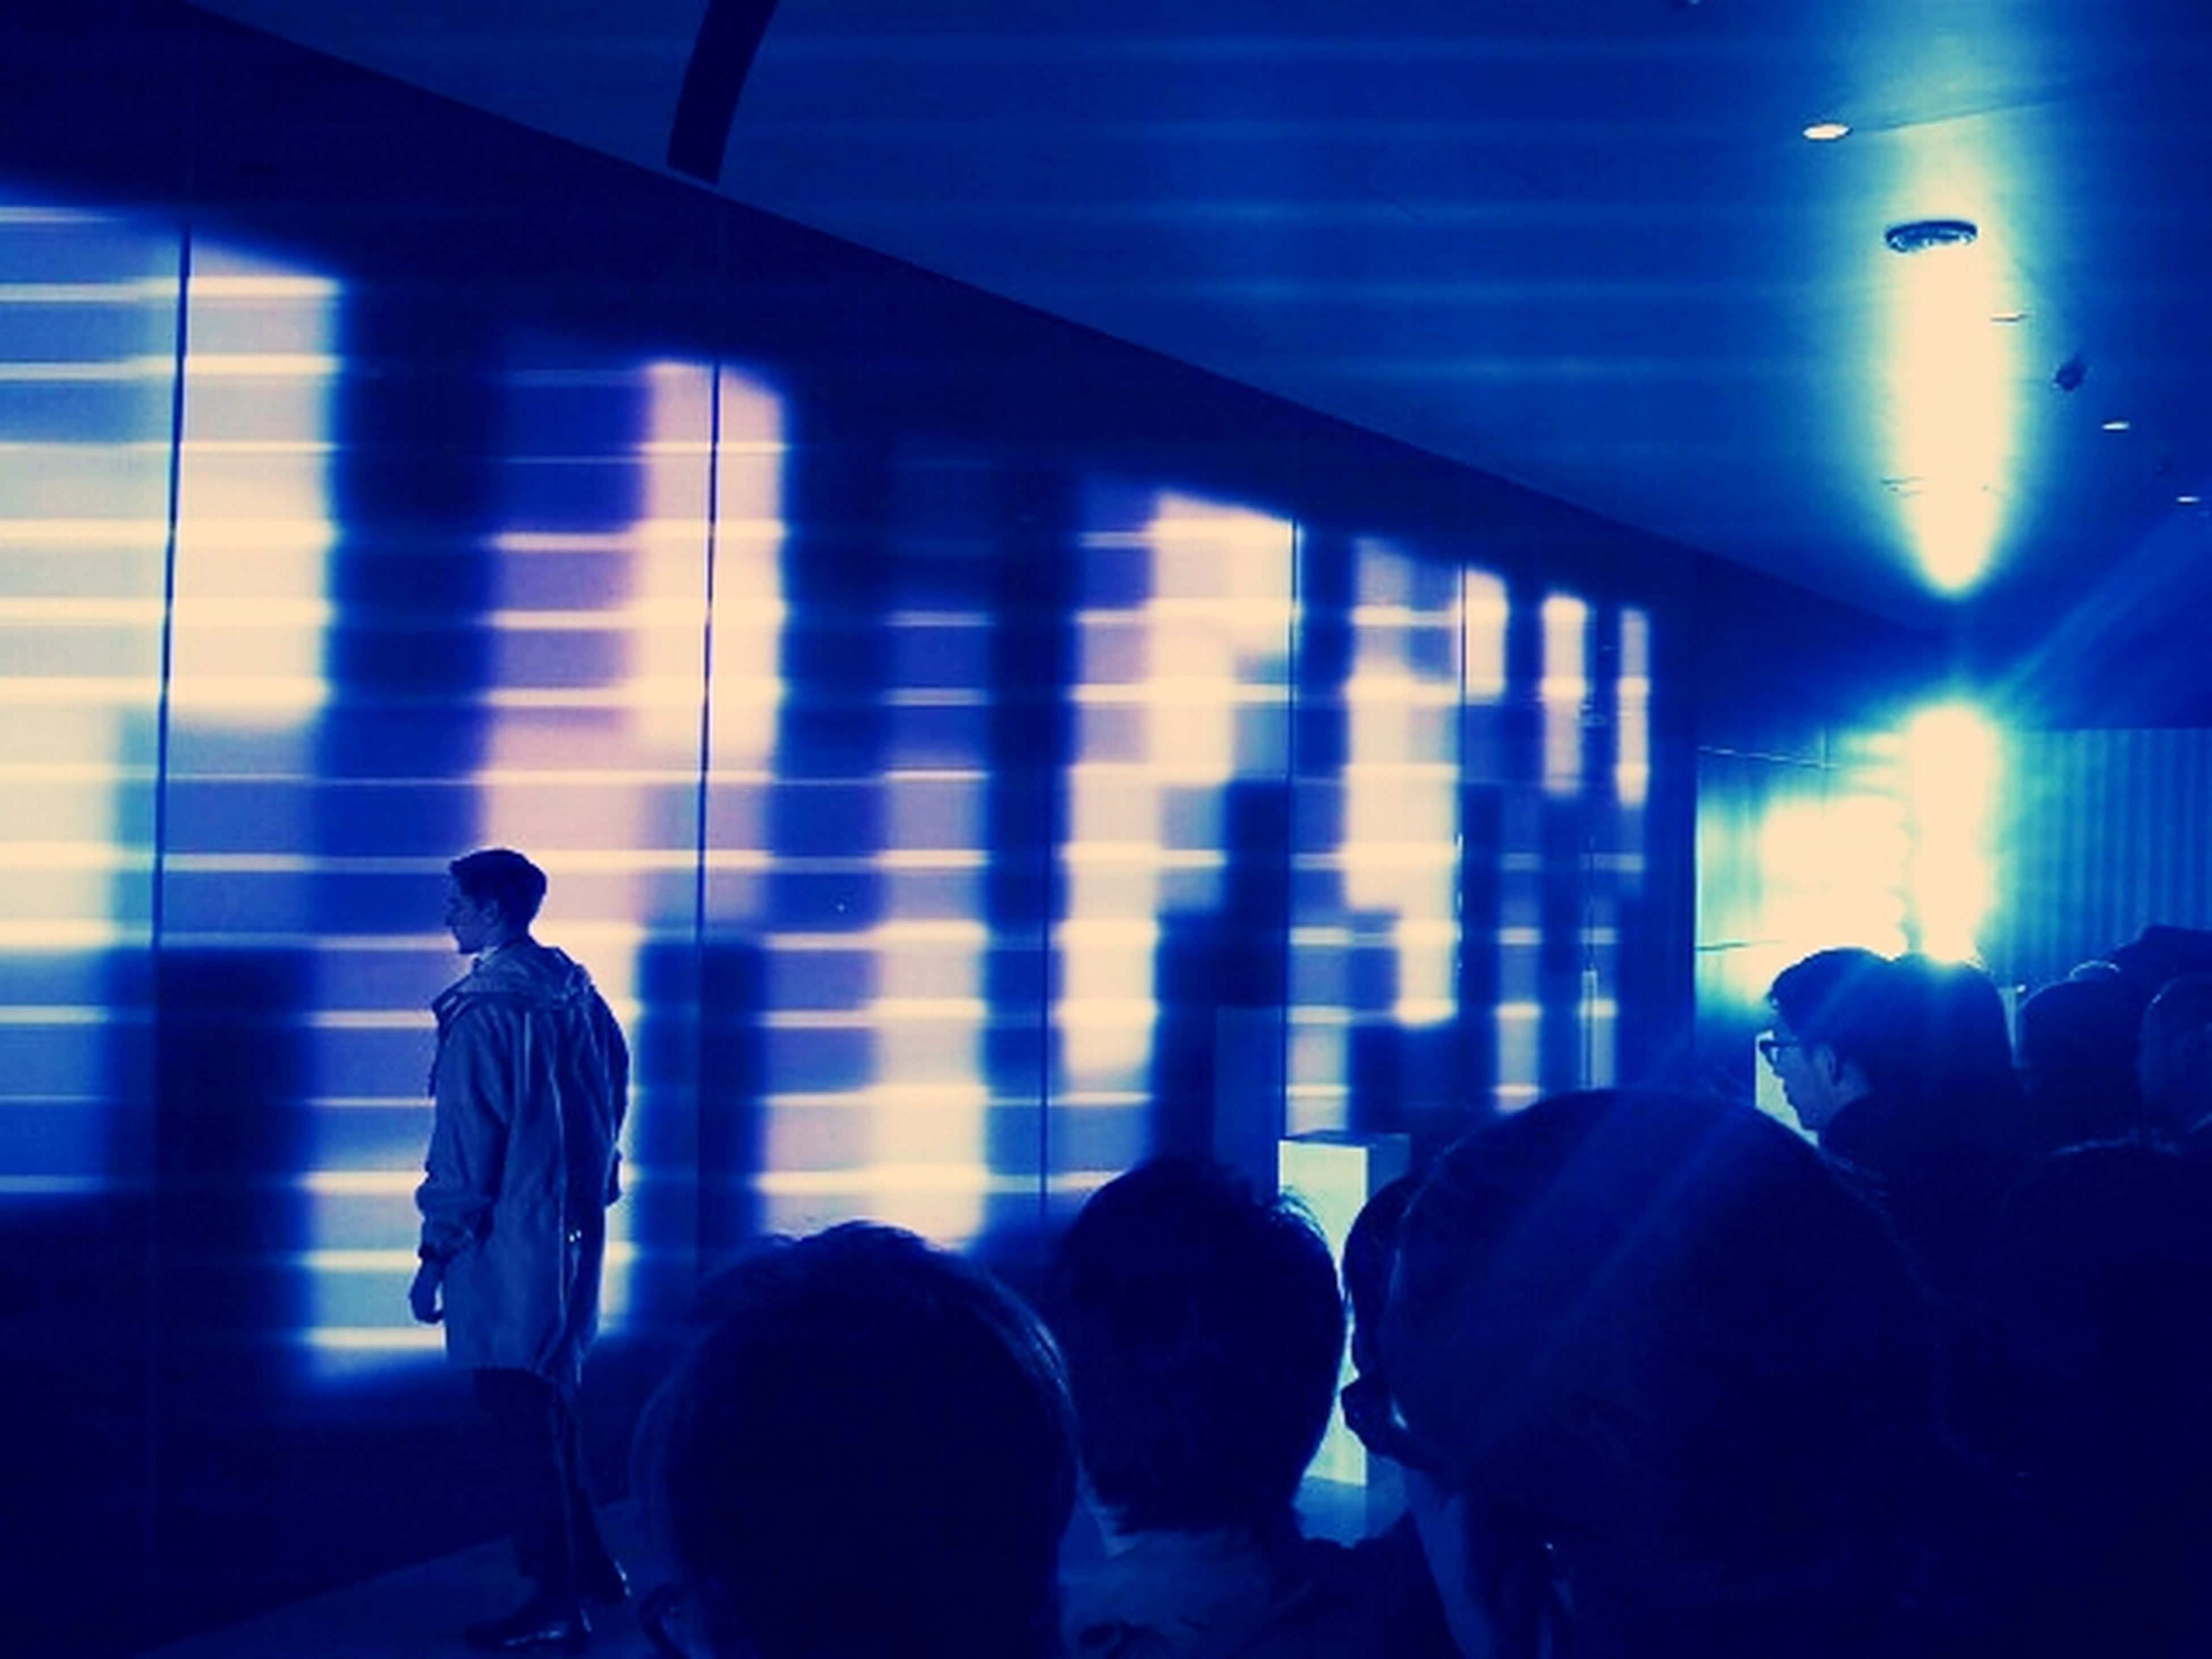 indoors, men, illuminated, lifestyles, silhouette, rear view, person, leisure activity, ceiling, standing, lighting equipment, blue, light - natural phenomenon, dark, togetherness, flooring, arts culture and entertainment, light